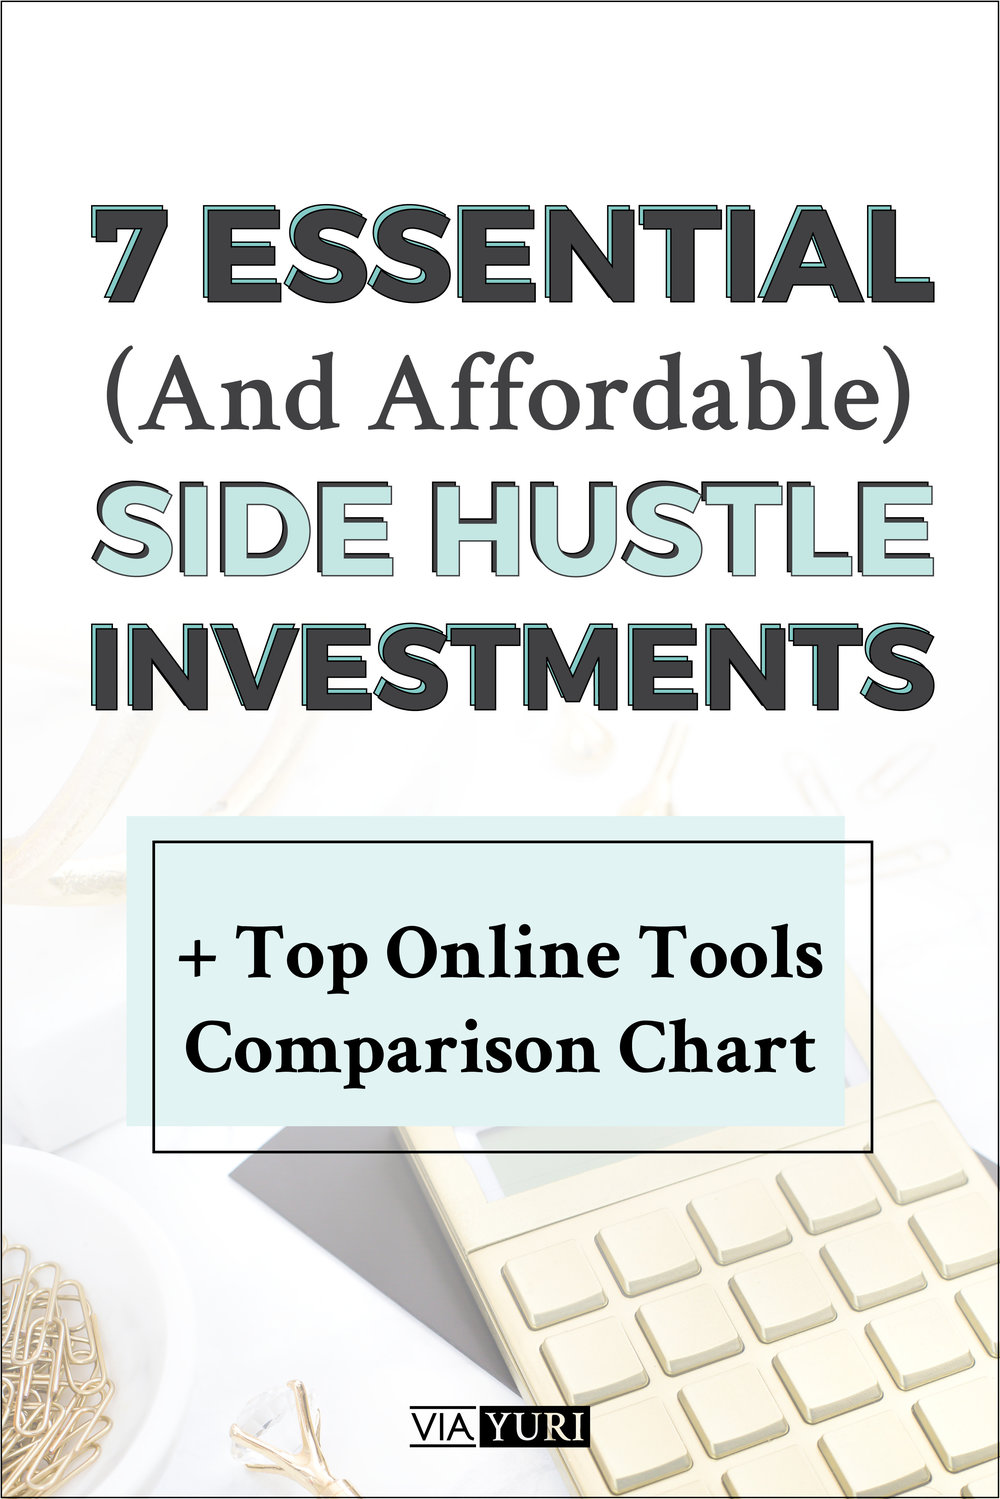 Essential & Affordable Side Hustle Investments -